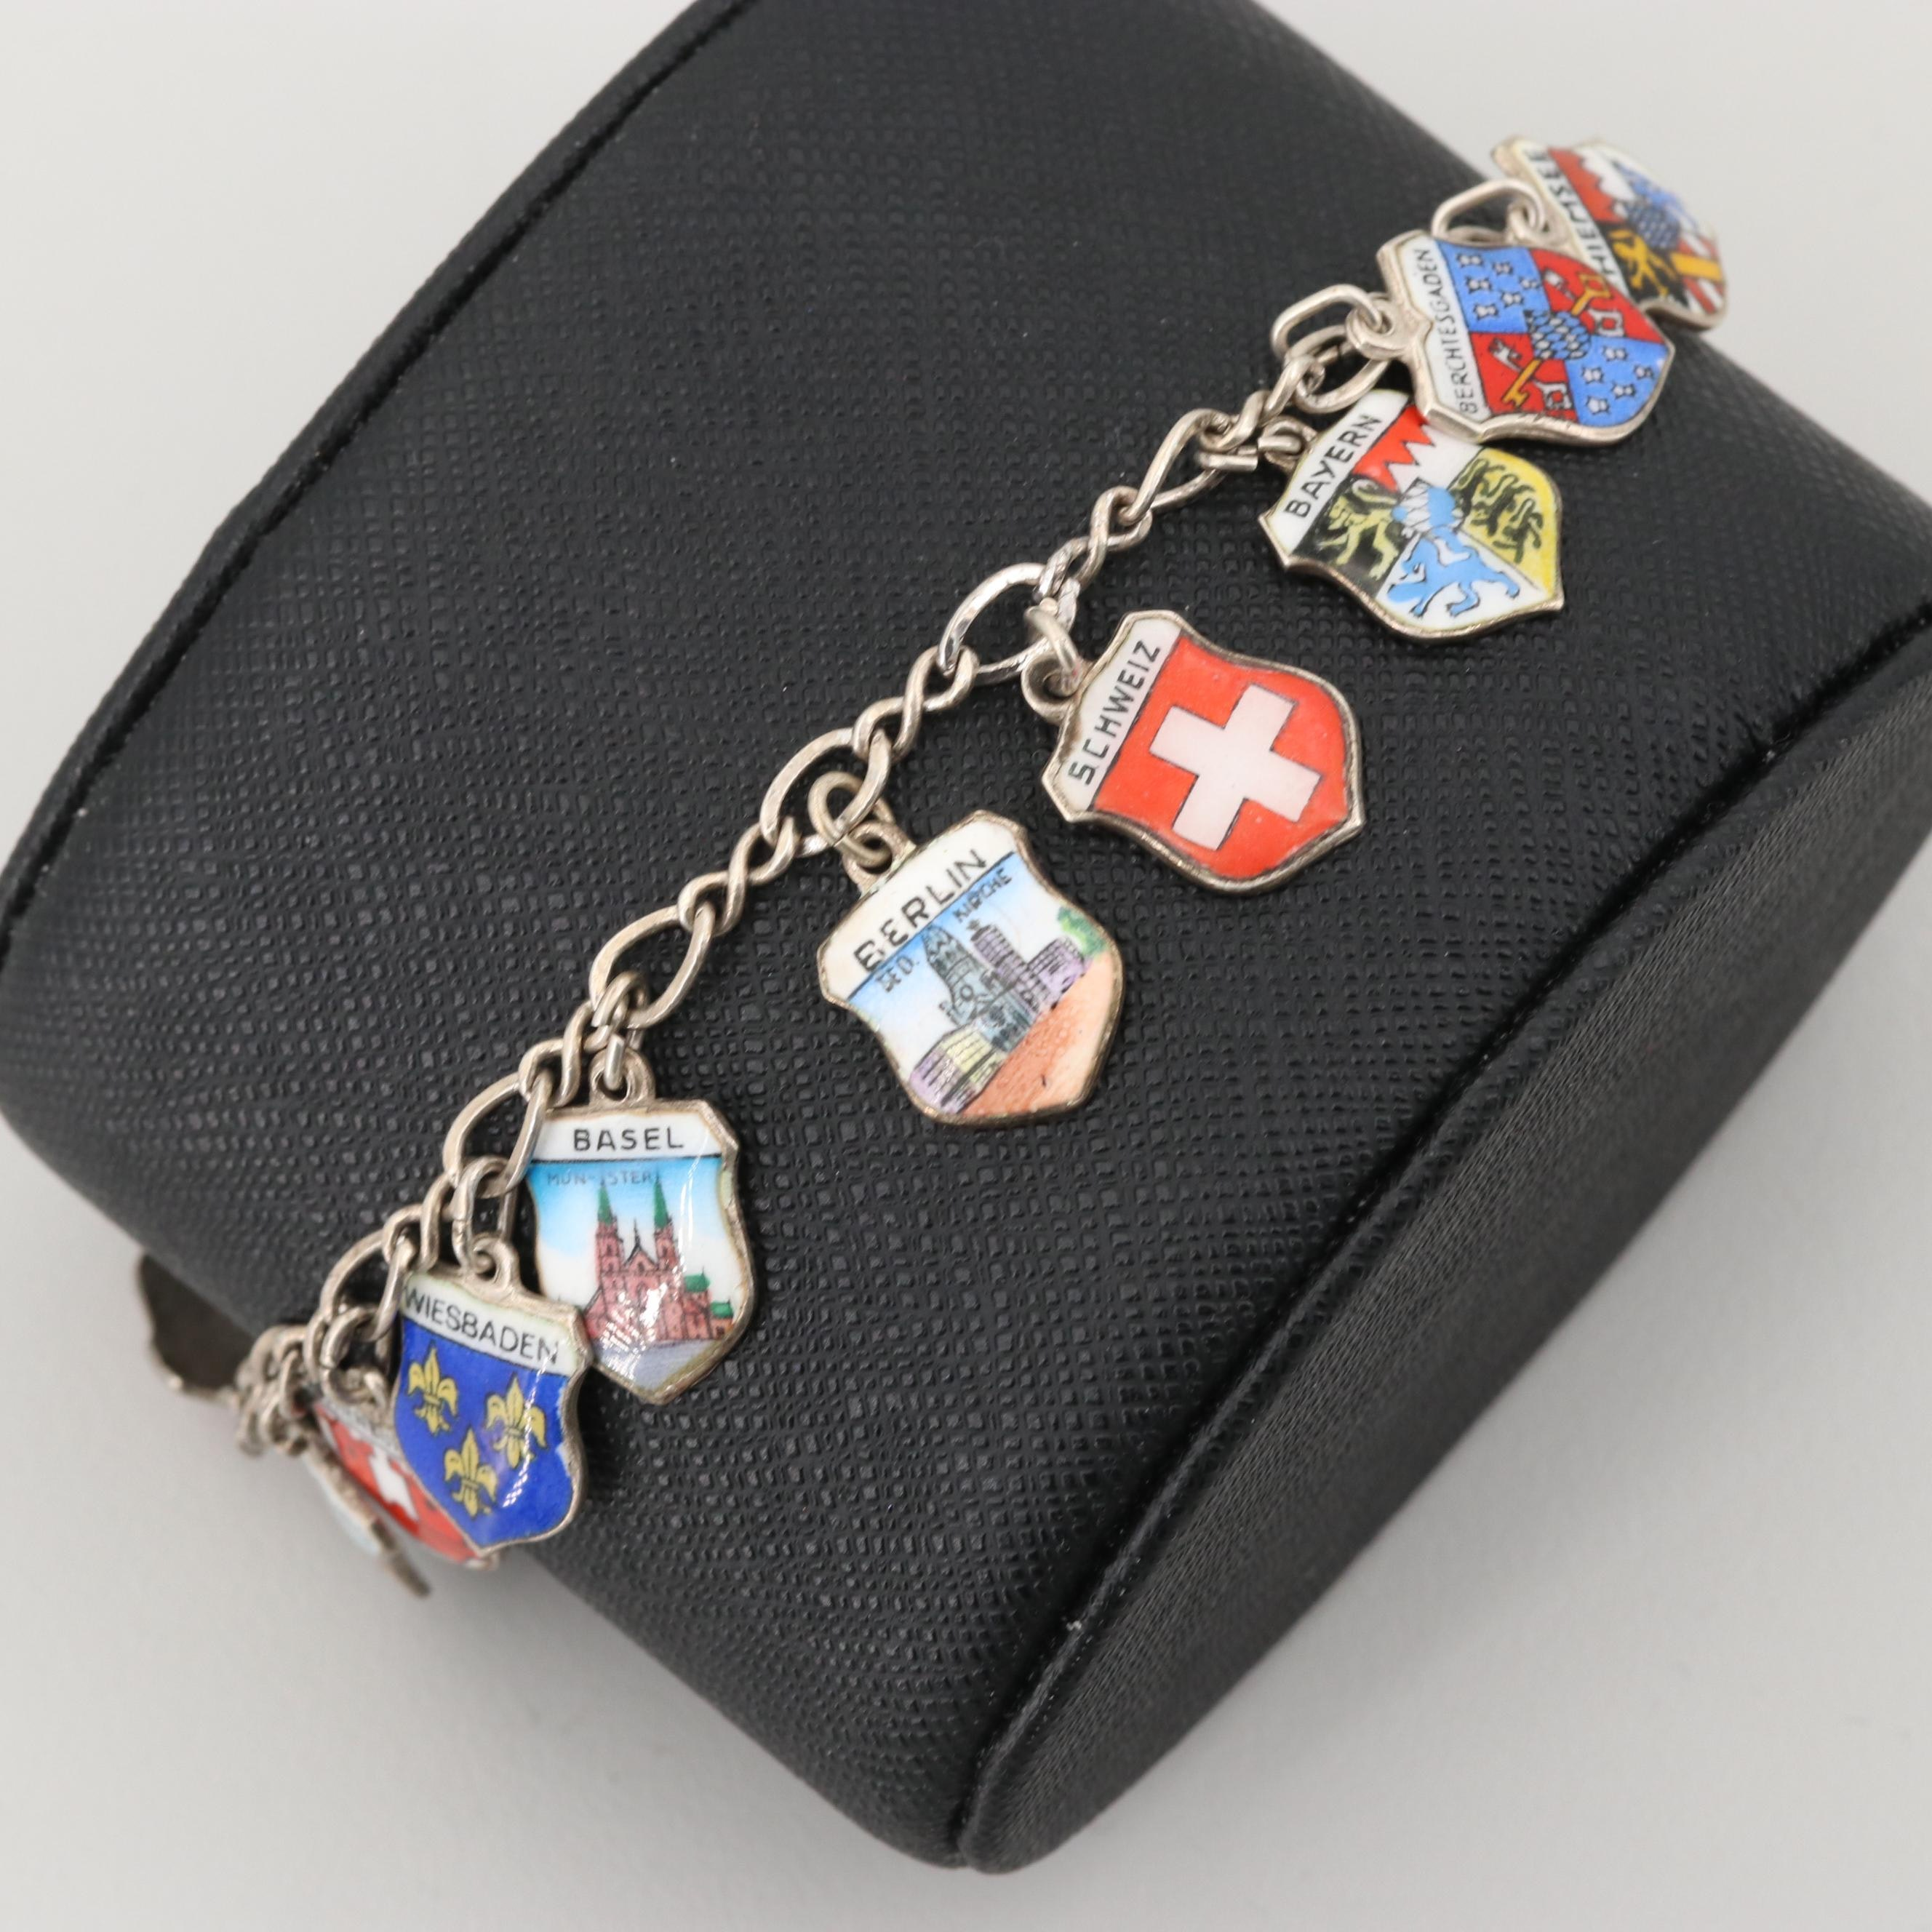 Vintage Beau Sterling Silver Charm Bracelet with German and Swiss Travel Charms